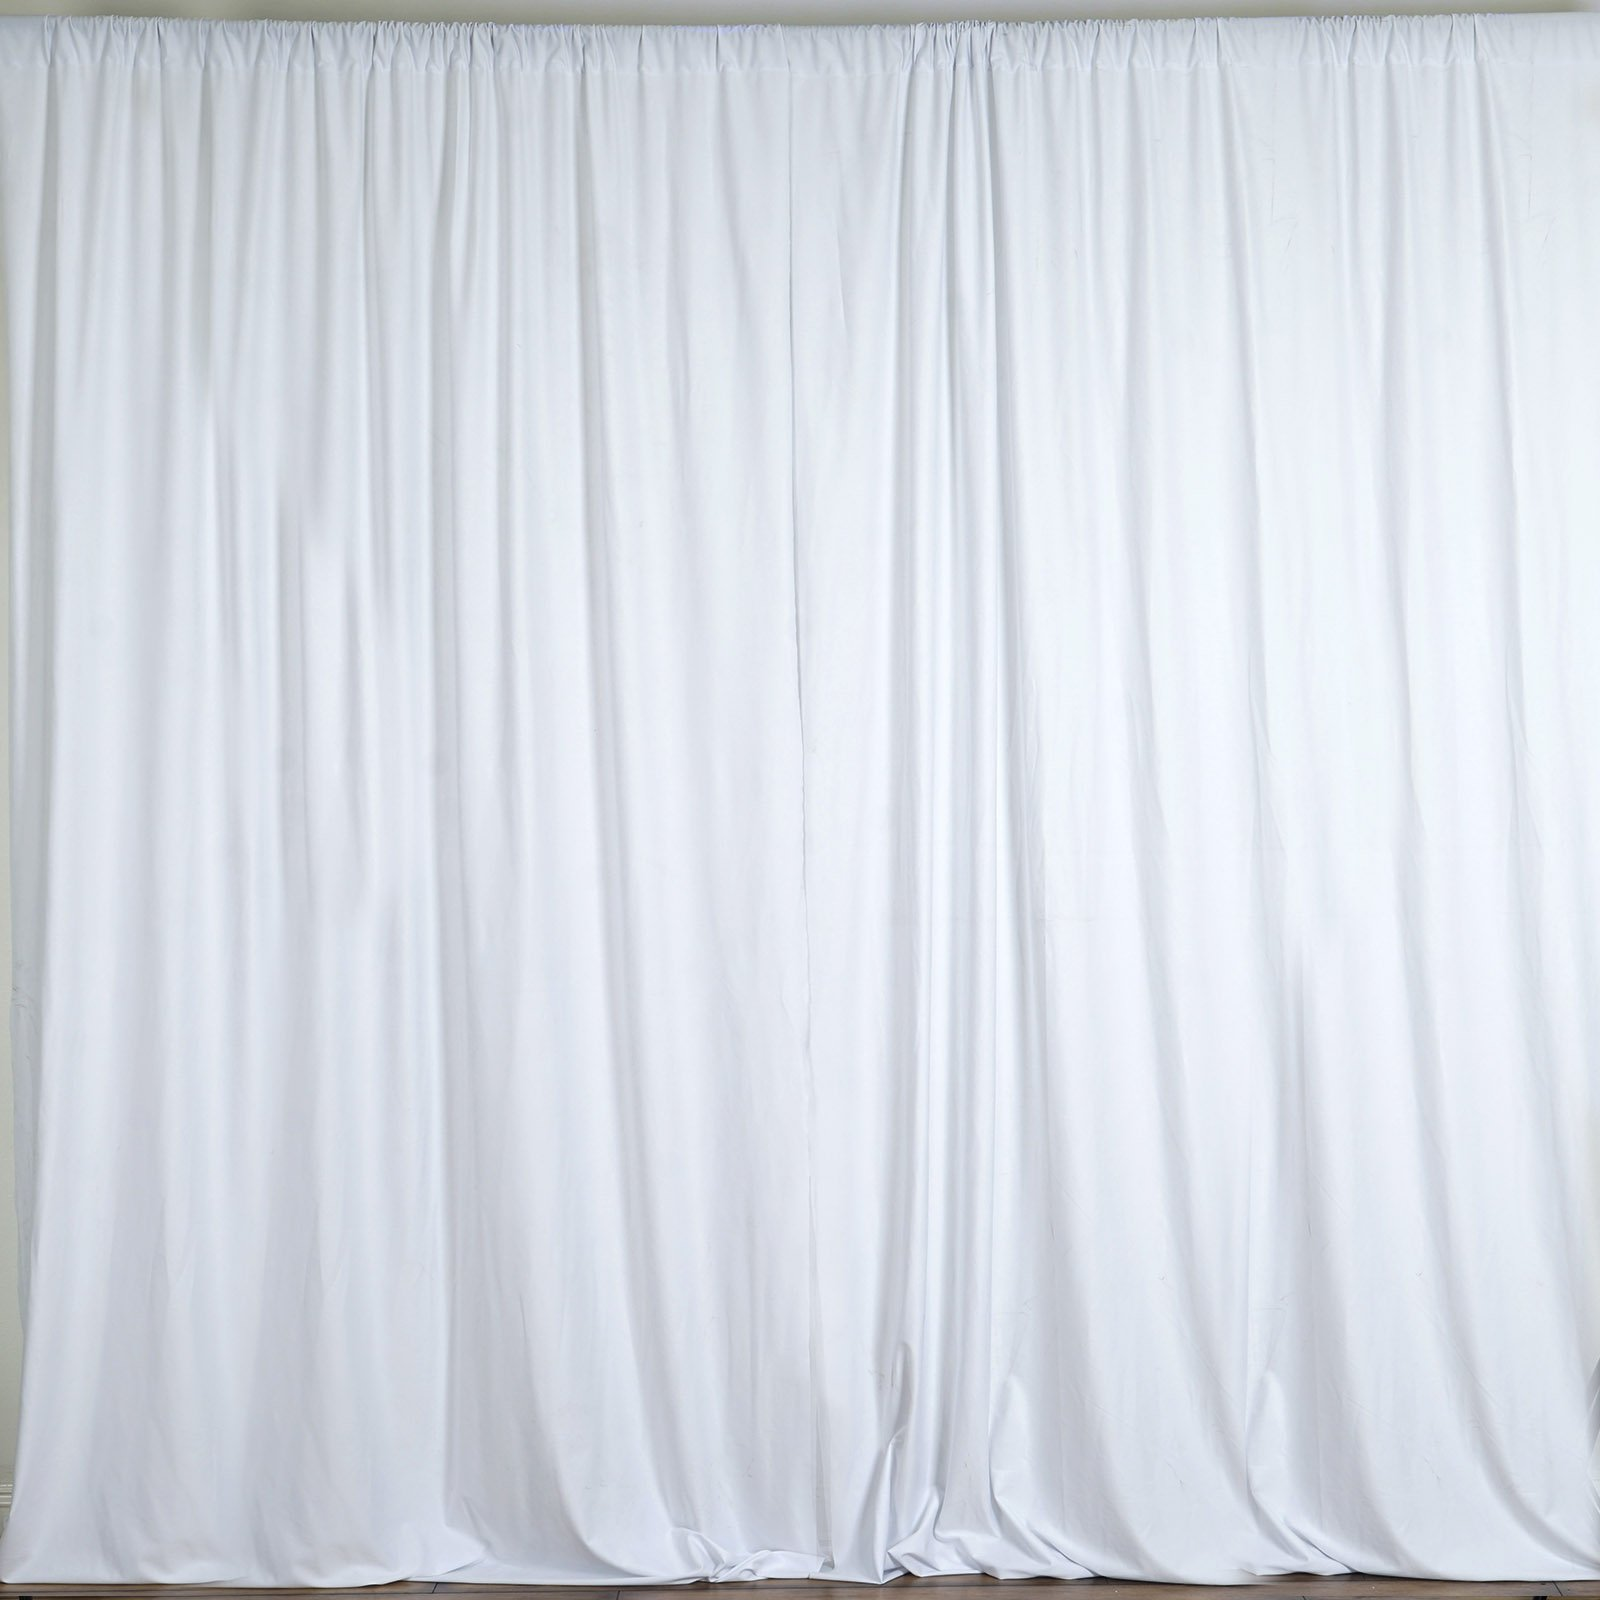 BalsaCircle 10 feet x 10 feet White Polyester Backdrop Drapes Curtains Panels - Wedding Ceremony Party Home Window Decorations